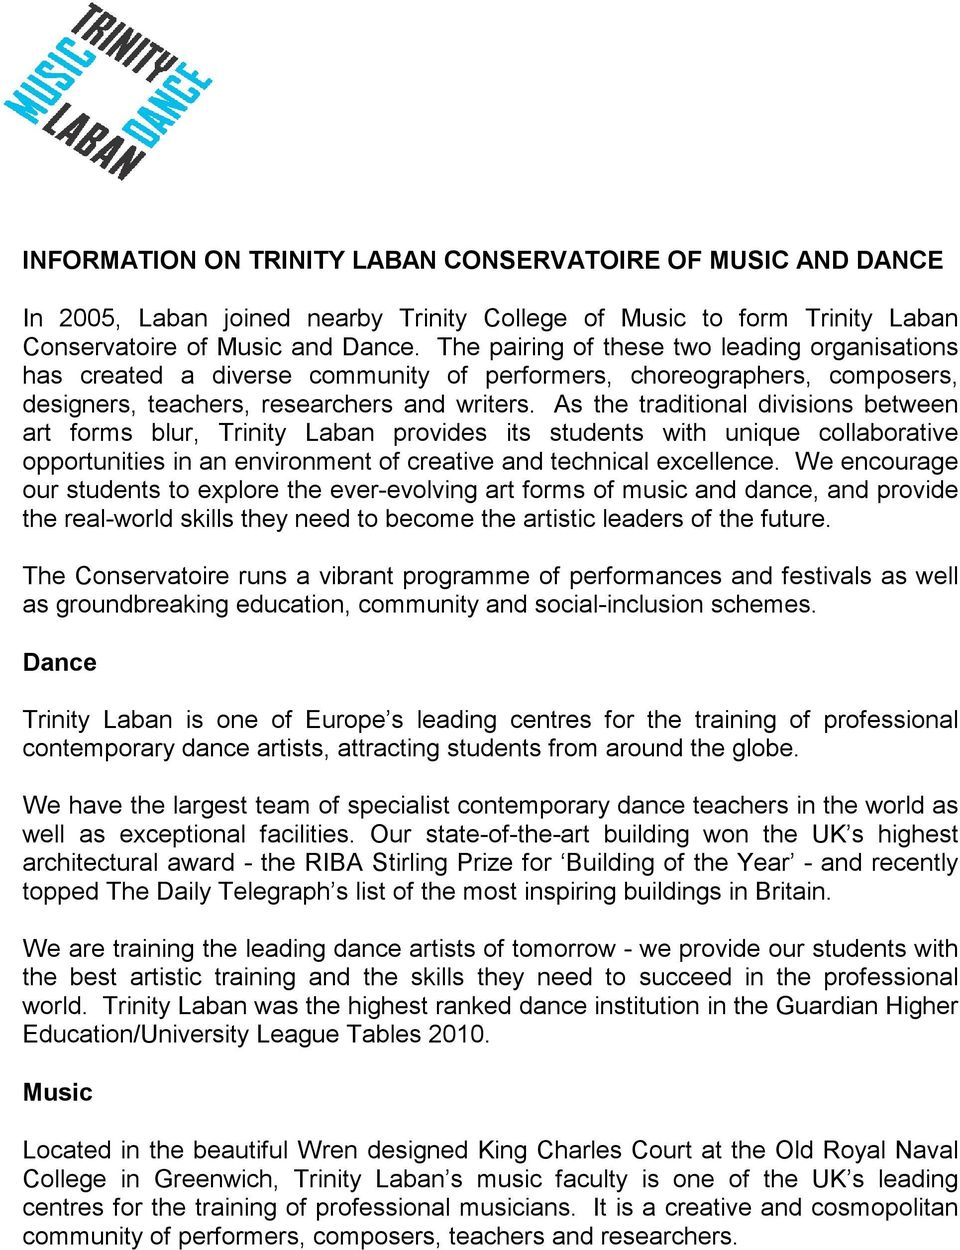 As the traditional divisions between art forms blur, Trinity Laban provides its students with unique collaborative opportunities in an environment of creative and technical excellence.